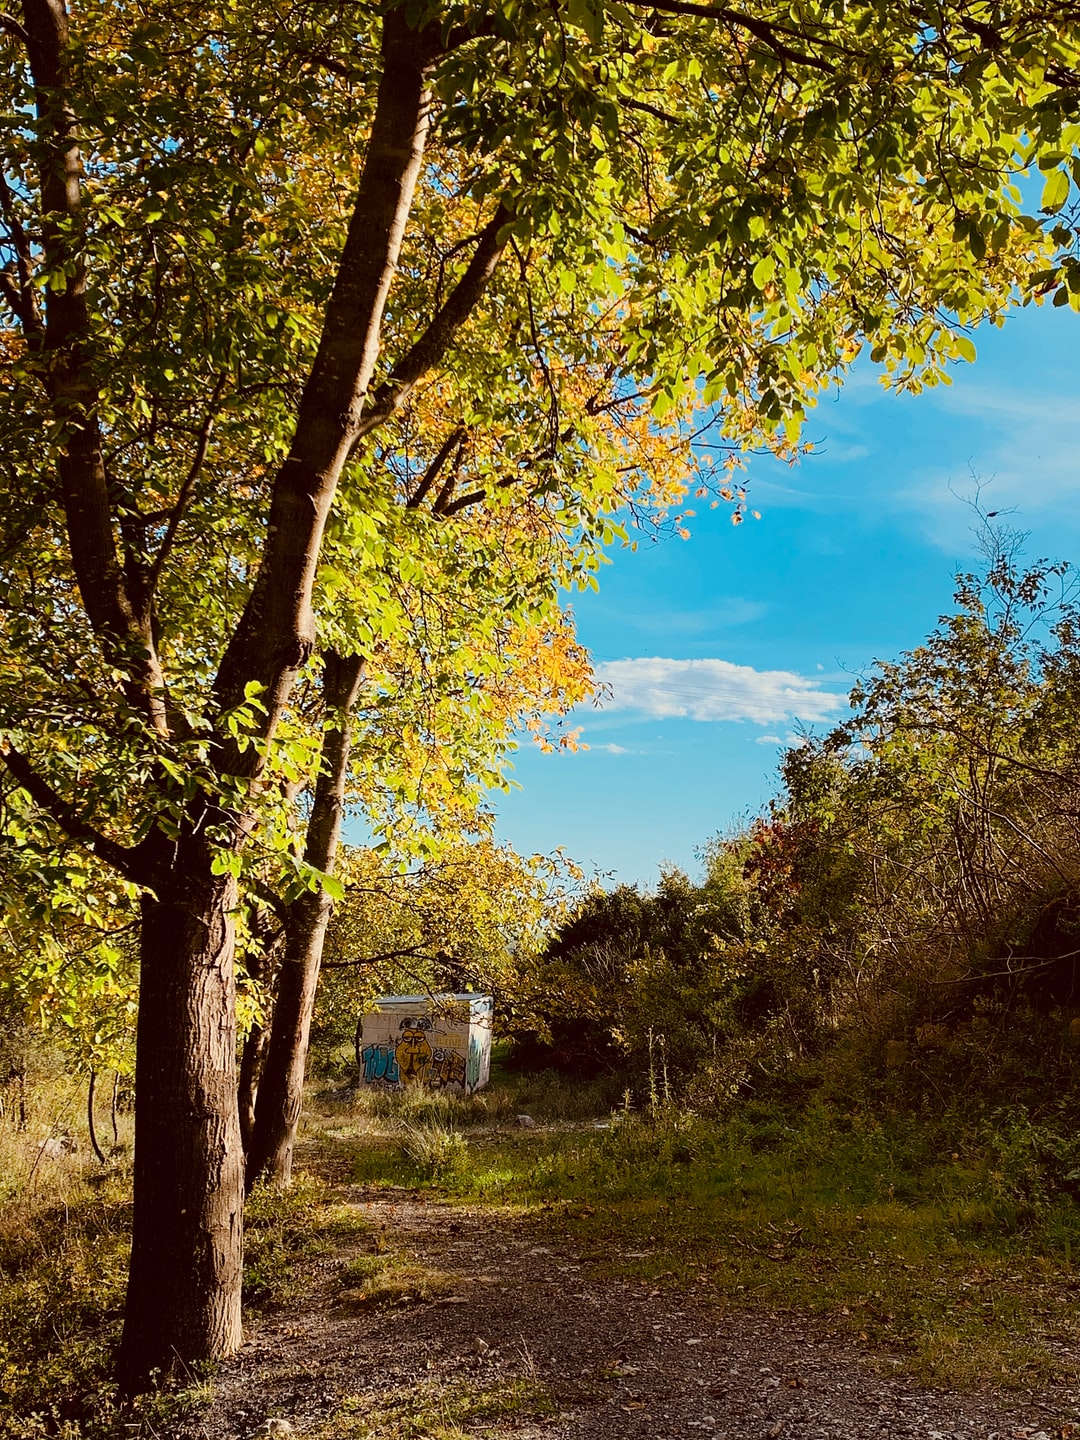 autumn is the time of picturesque tranquillity